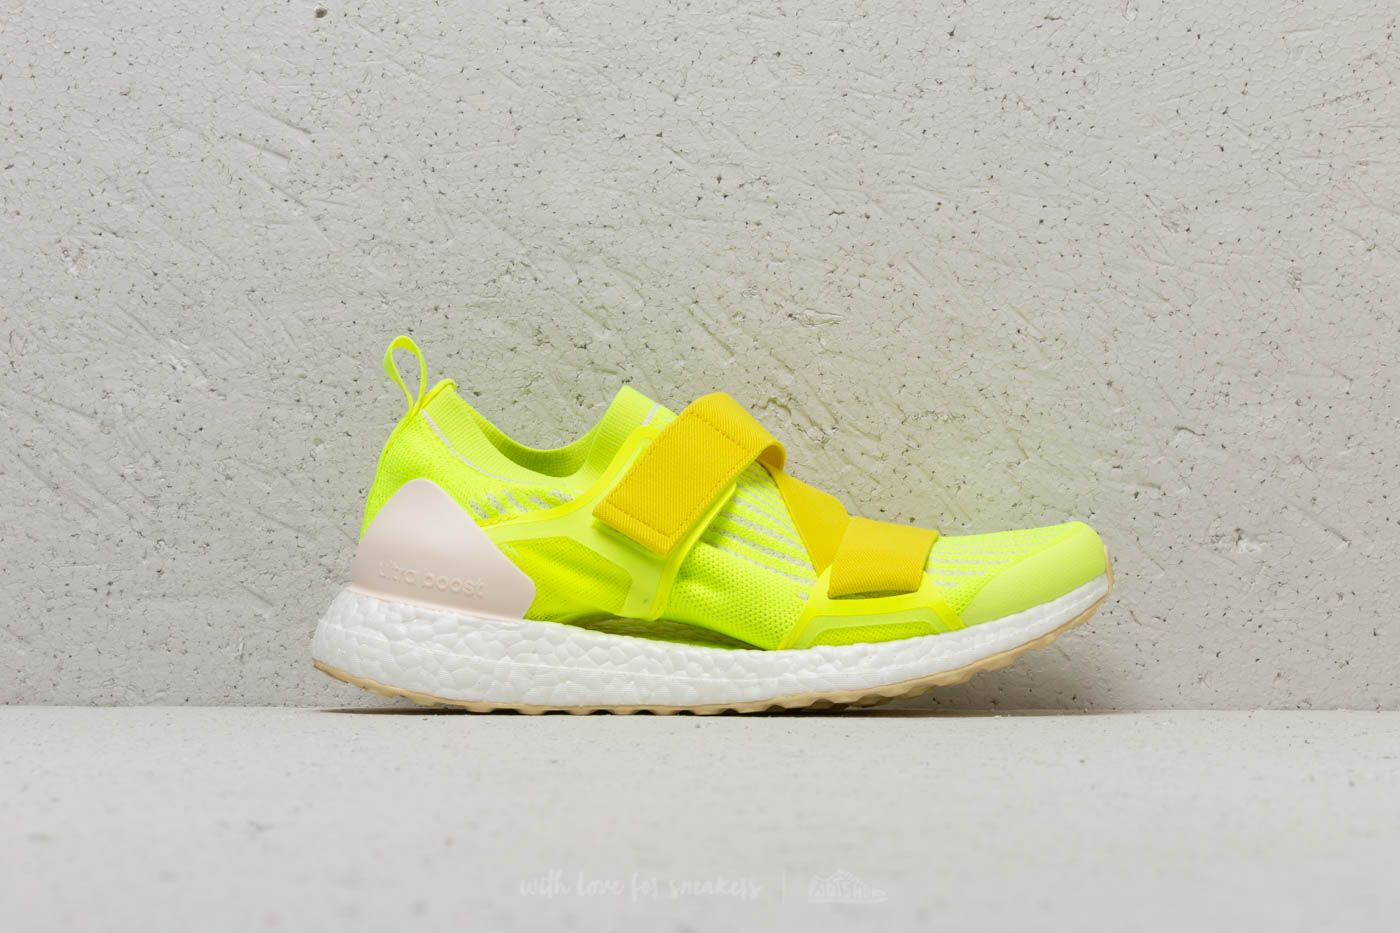 bc0ce3d401295 adidas x Stella McCartney Ultraboost X S. Yellow  Yellow  Missun at a great